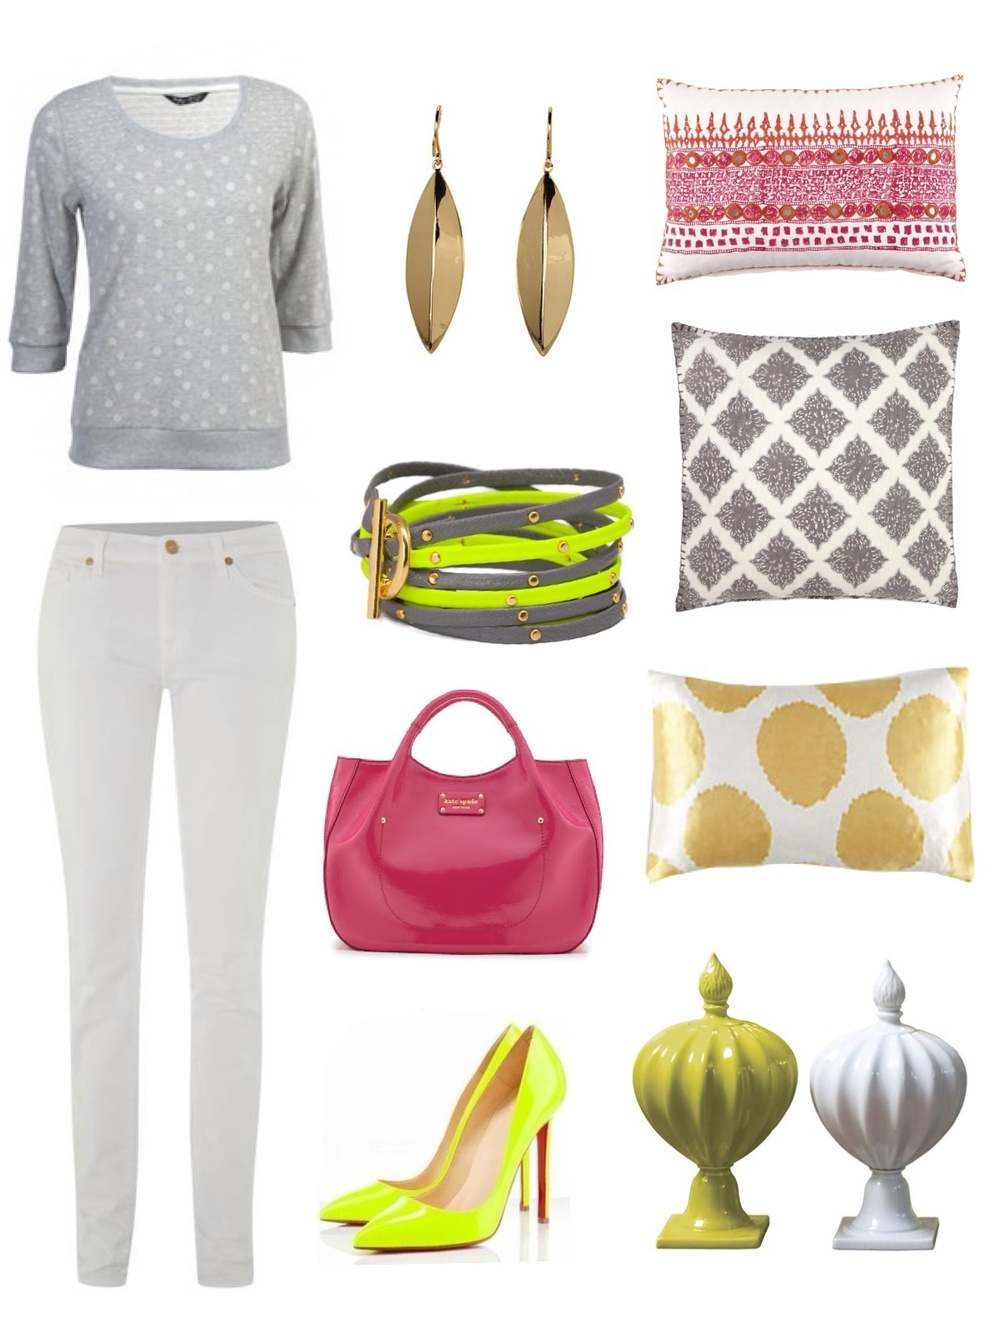 Available through Savvy: jewelry, pillows and pottery / Handbag: Kate Spade / Jeans: 7 For All Mankind / Shoes and Sweater: Polyvore Kimberly Kowalski, Allied ASID